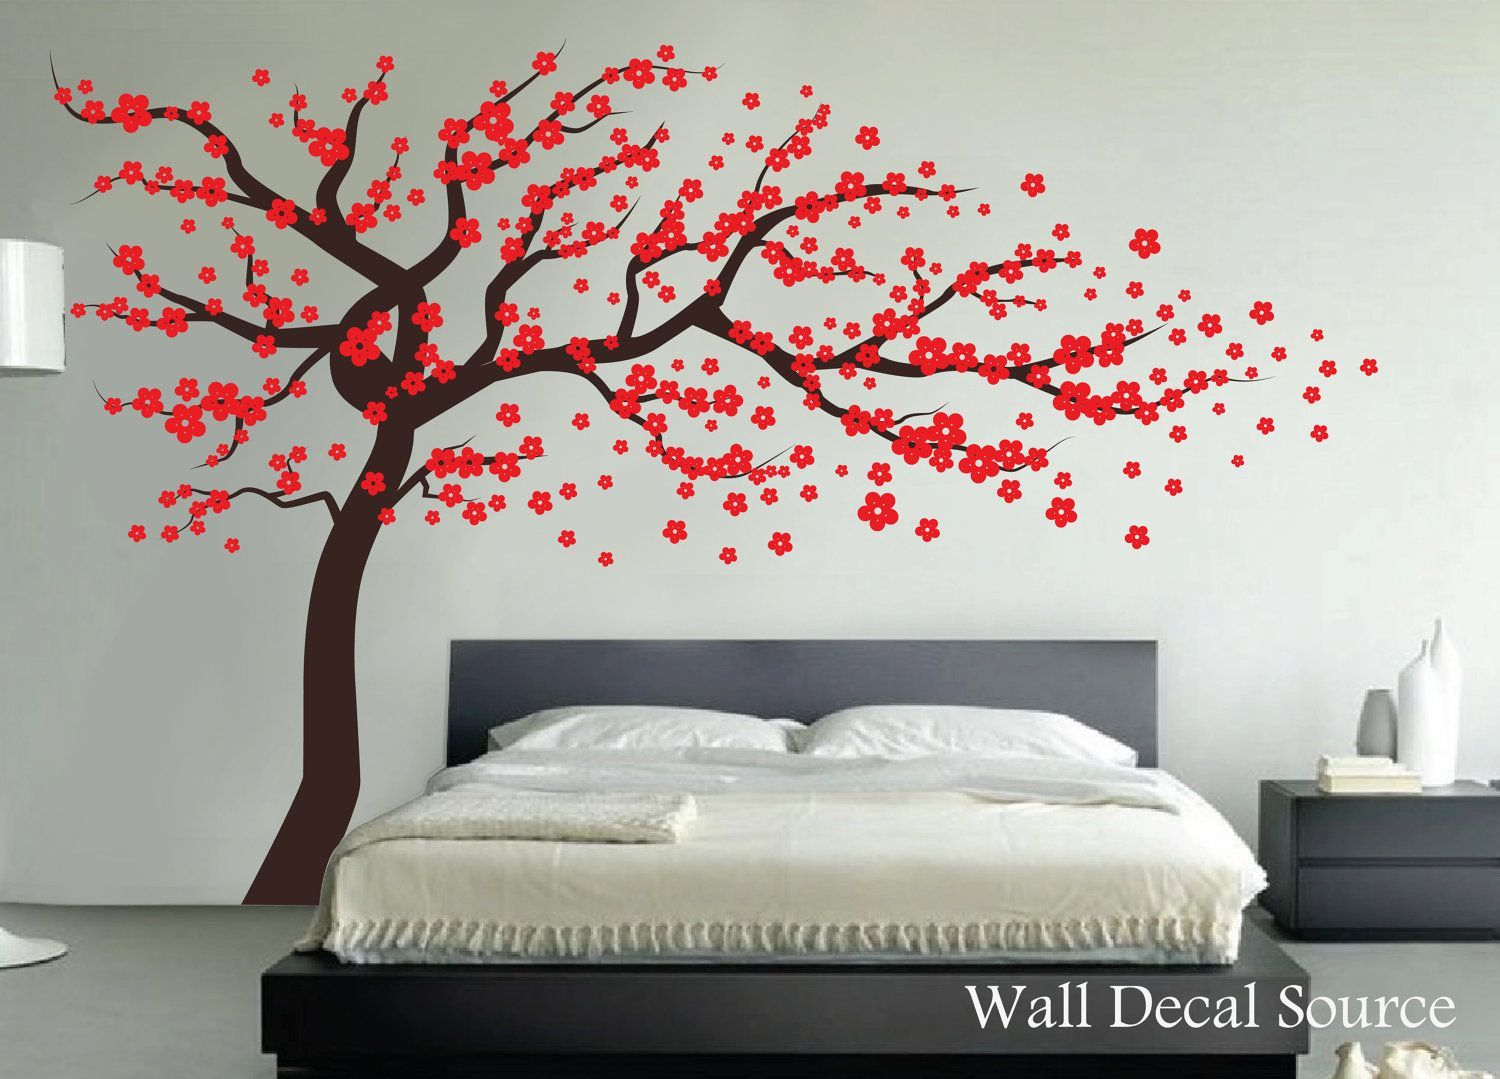 Red Cherry Blossom Tree Wall Decal Vinyl Wall Decor Wall Tree Decal Reusable Available By Walldecalsource Wall Vinyl Decor Home Wall Decor Tree Wall Decal